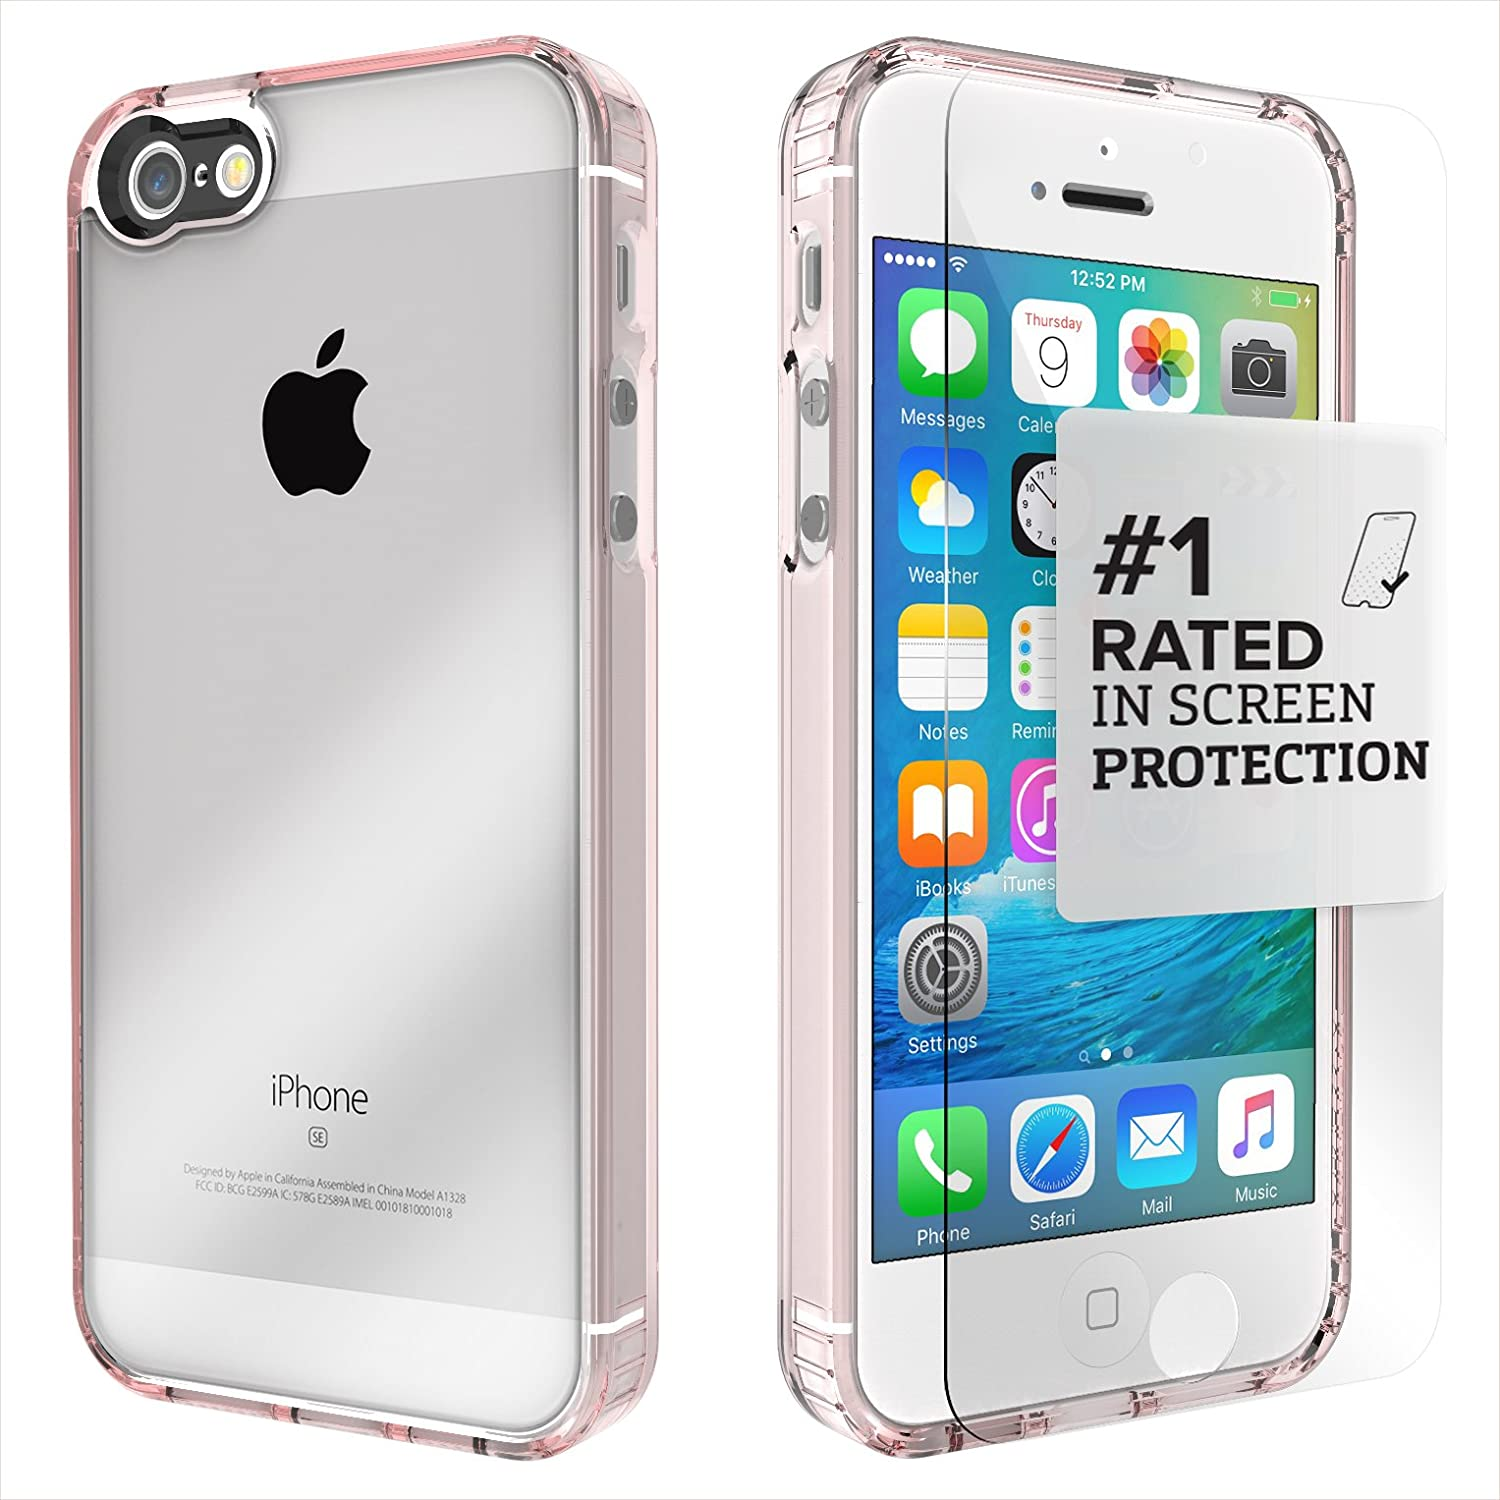 Saharacase iphone 6 6s crystal clear case rose gold edge saharacase - Amazon Com Iphone Se Case Fits Iphone 5s 5 Se Rose Gold Clear Saharacase Protective Kit Bundled With Tempered Glass Screen Protector Slim Fit Rugged